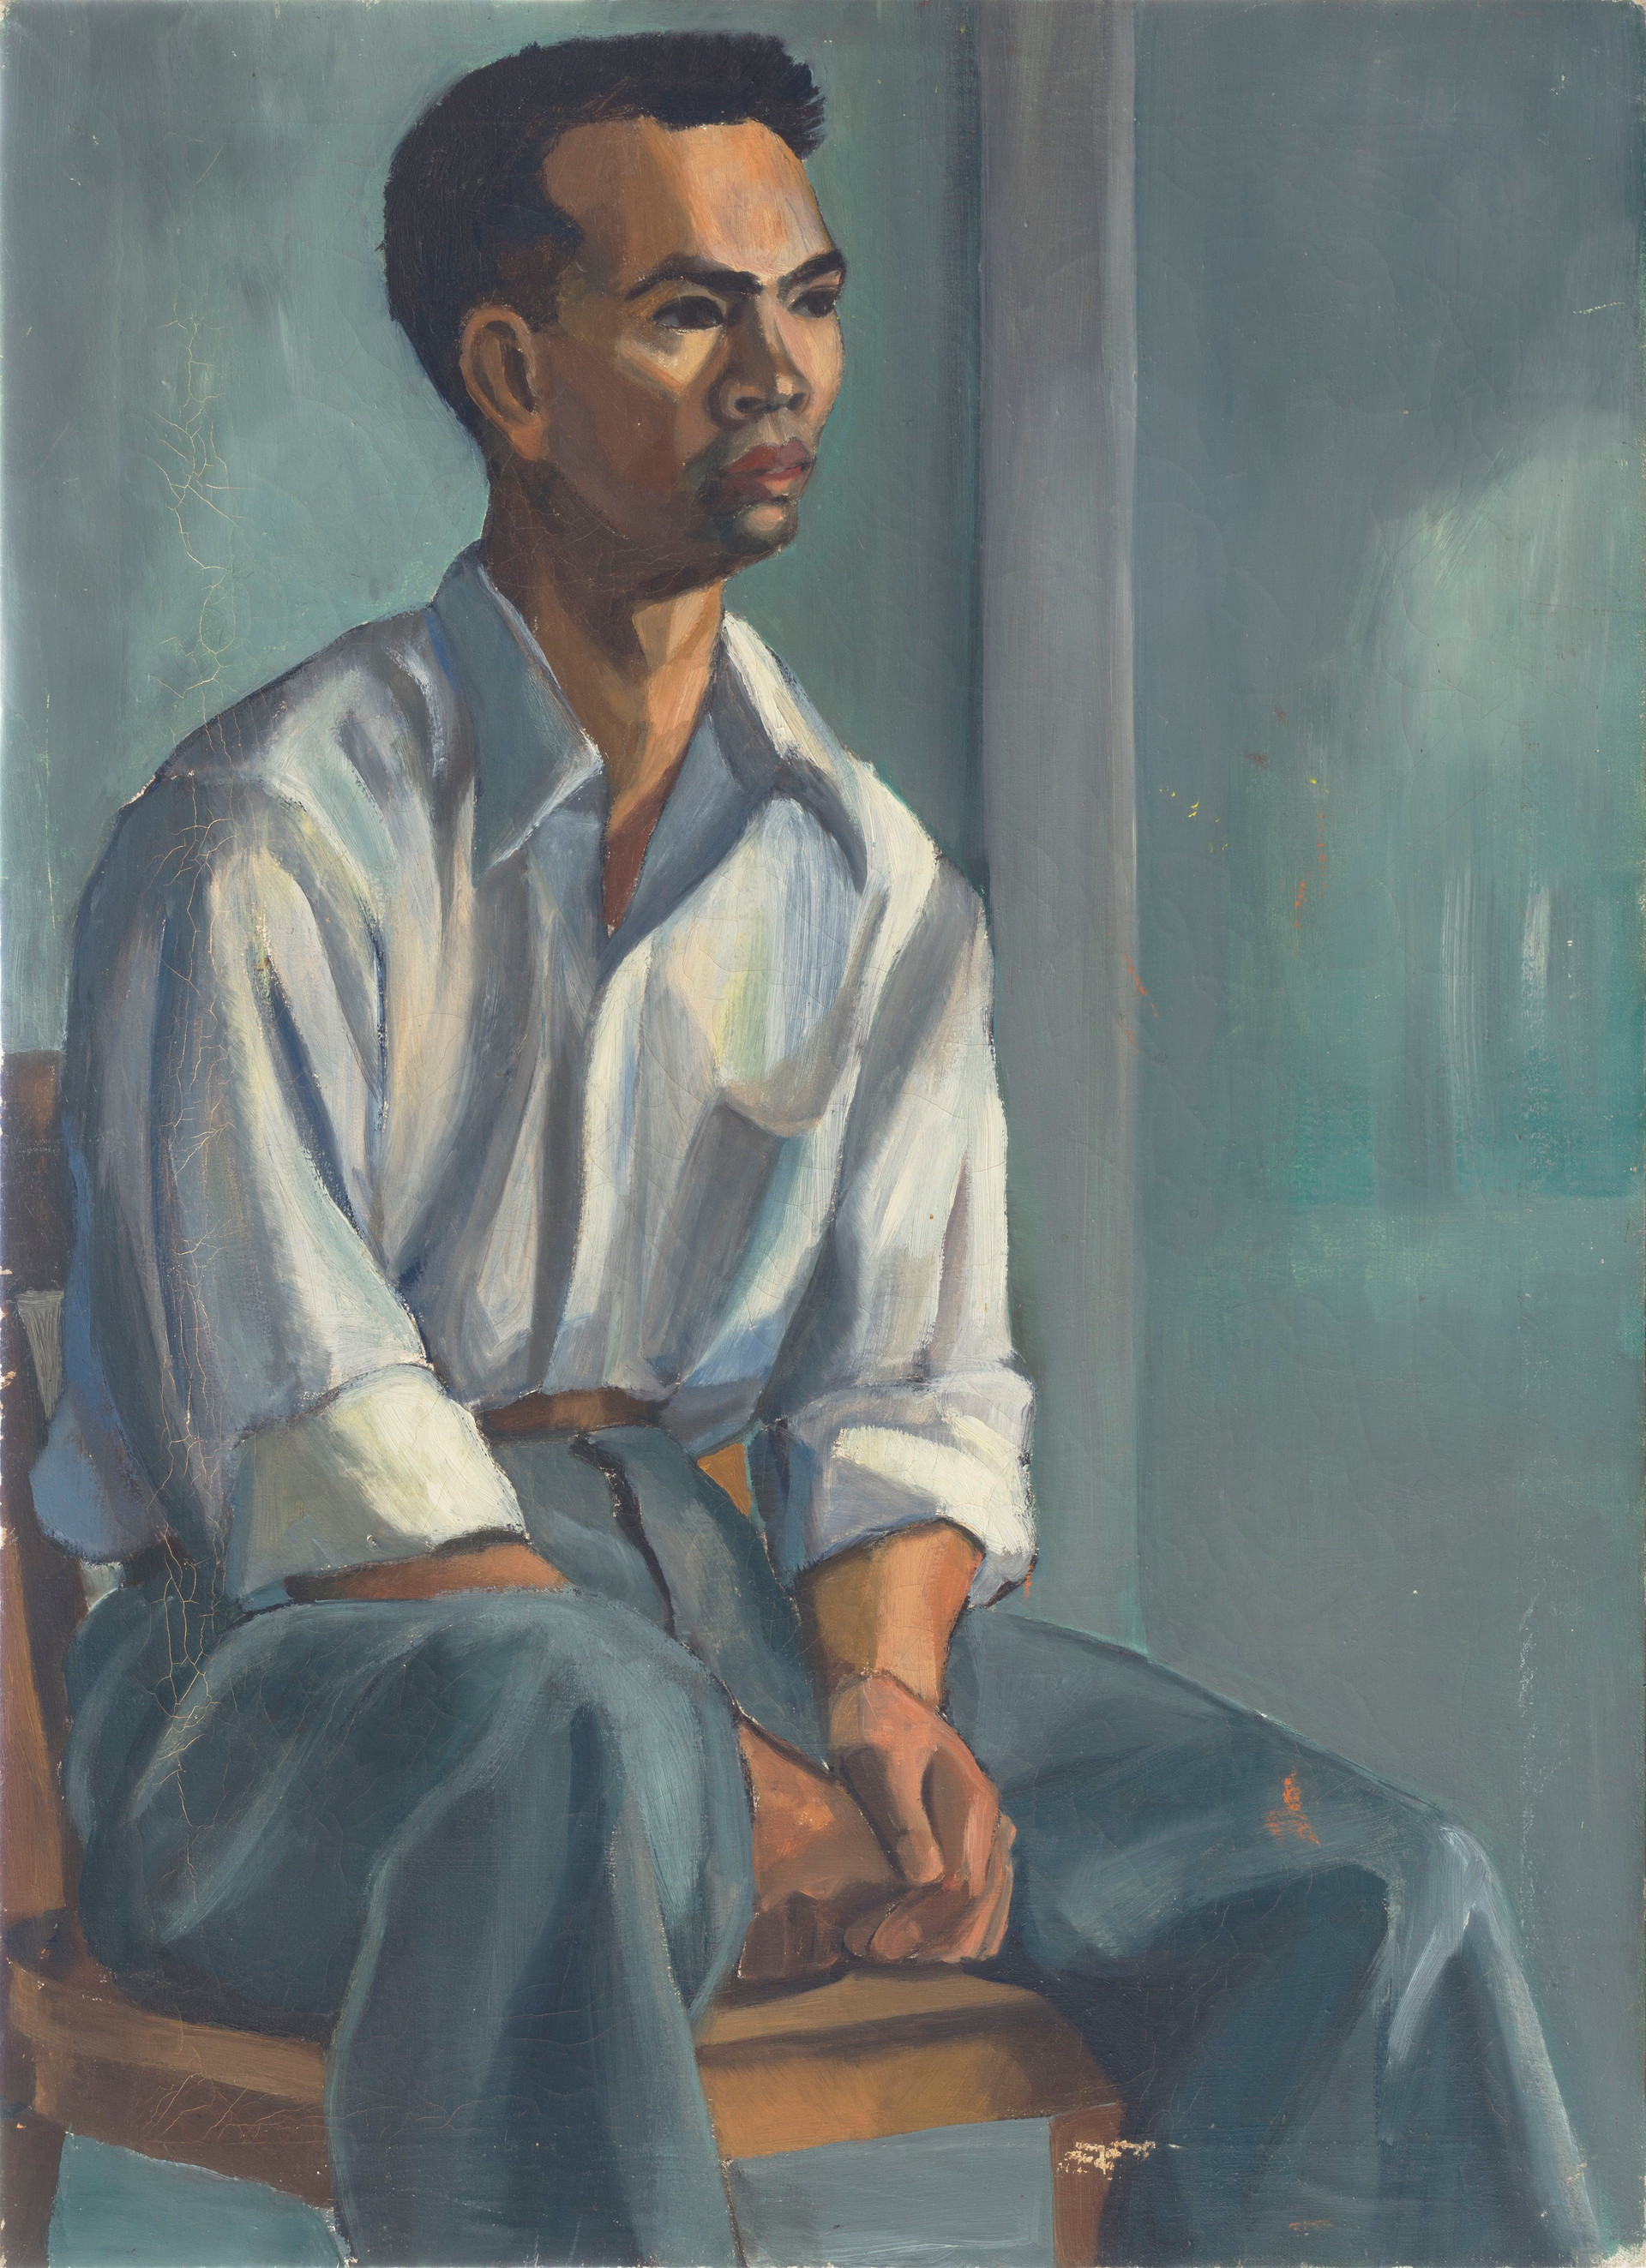 Untitled - portrait of art student sitting on chair in blue room